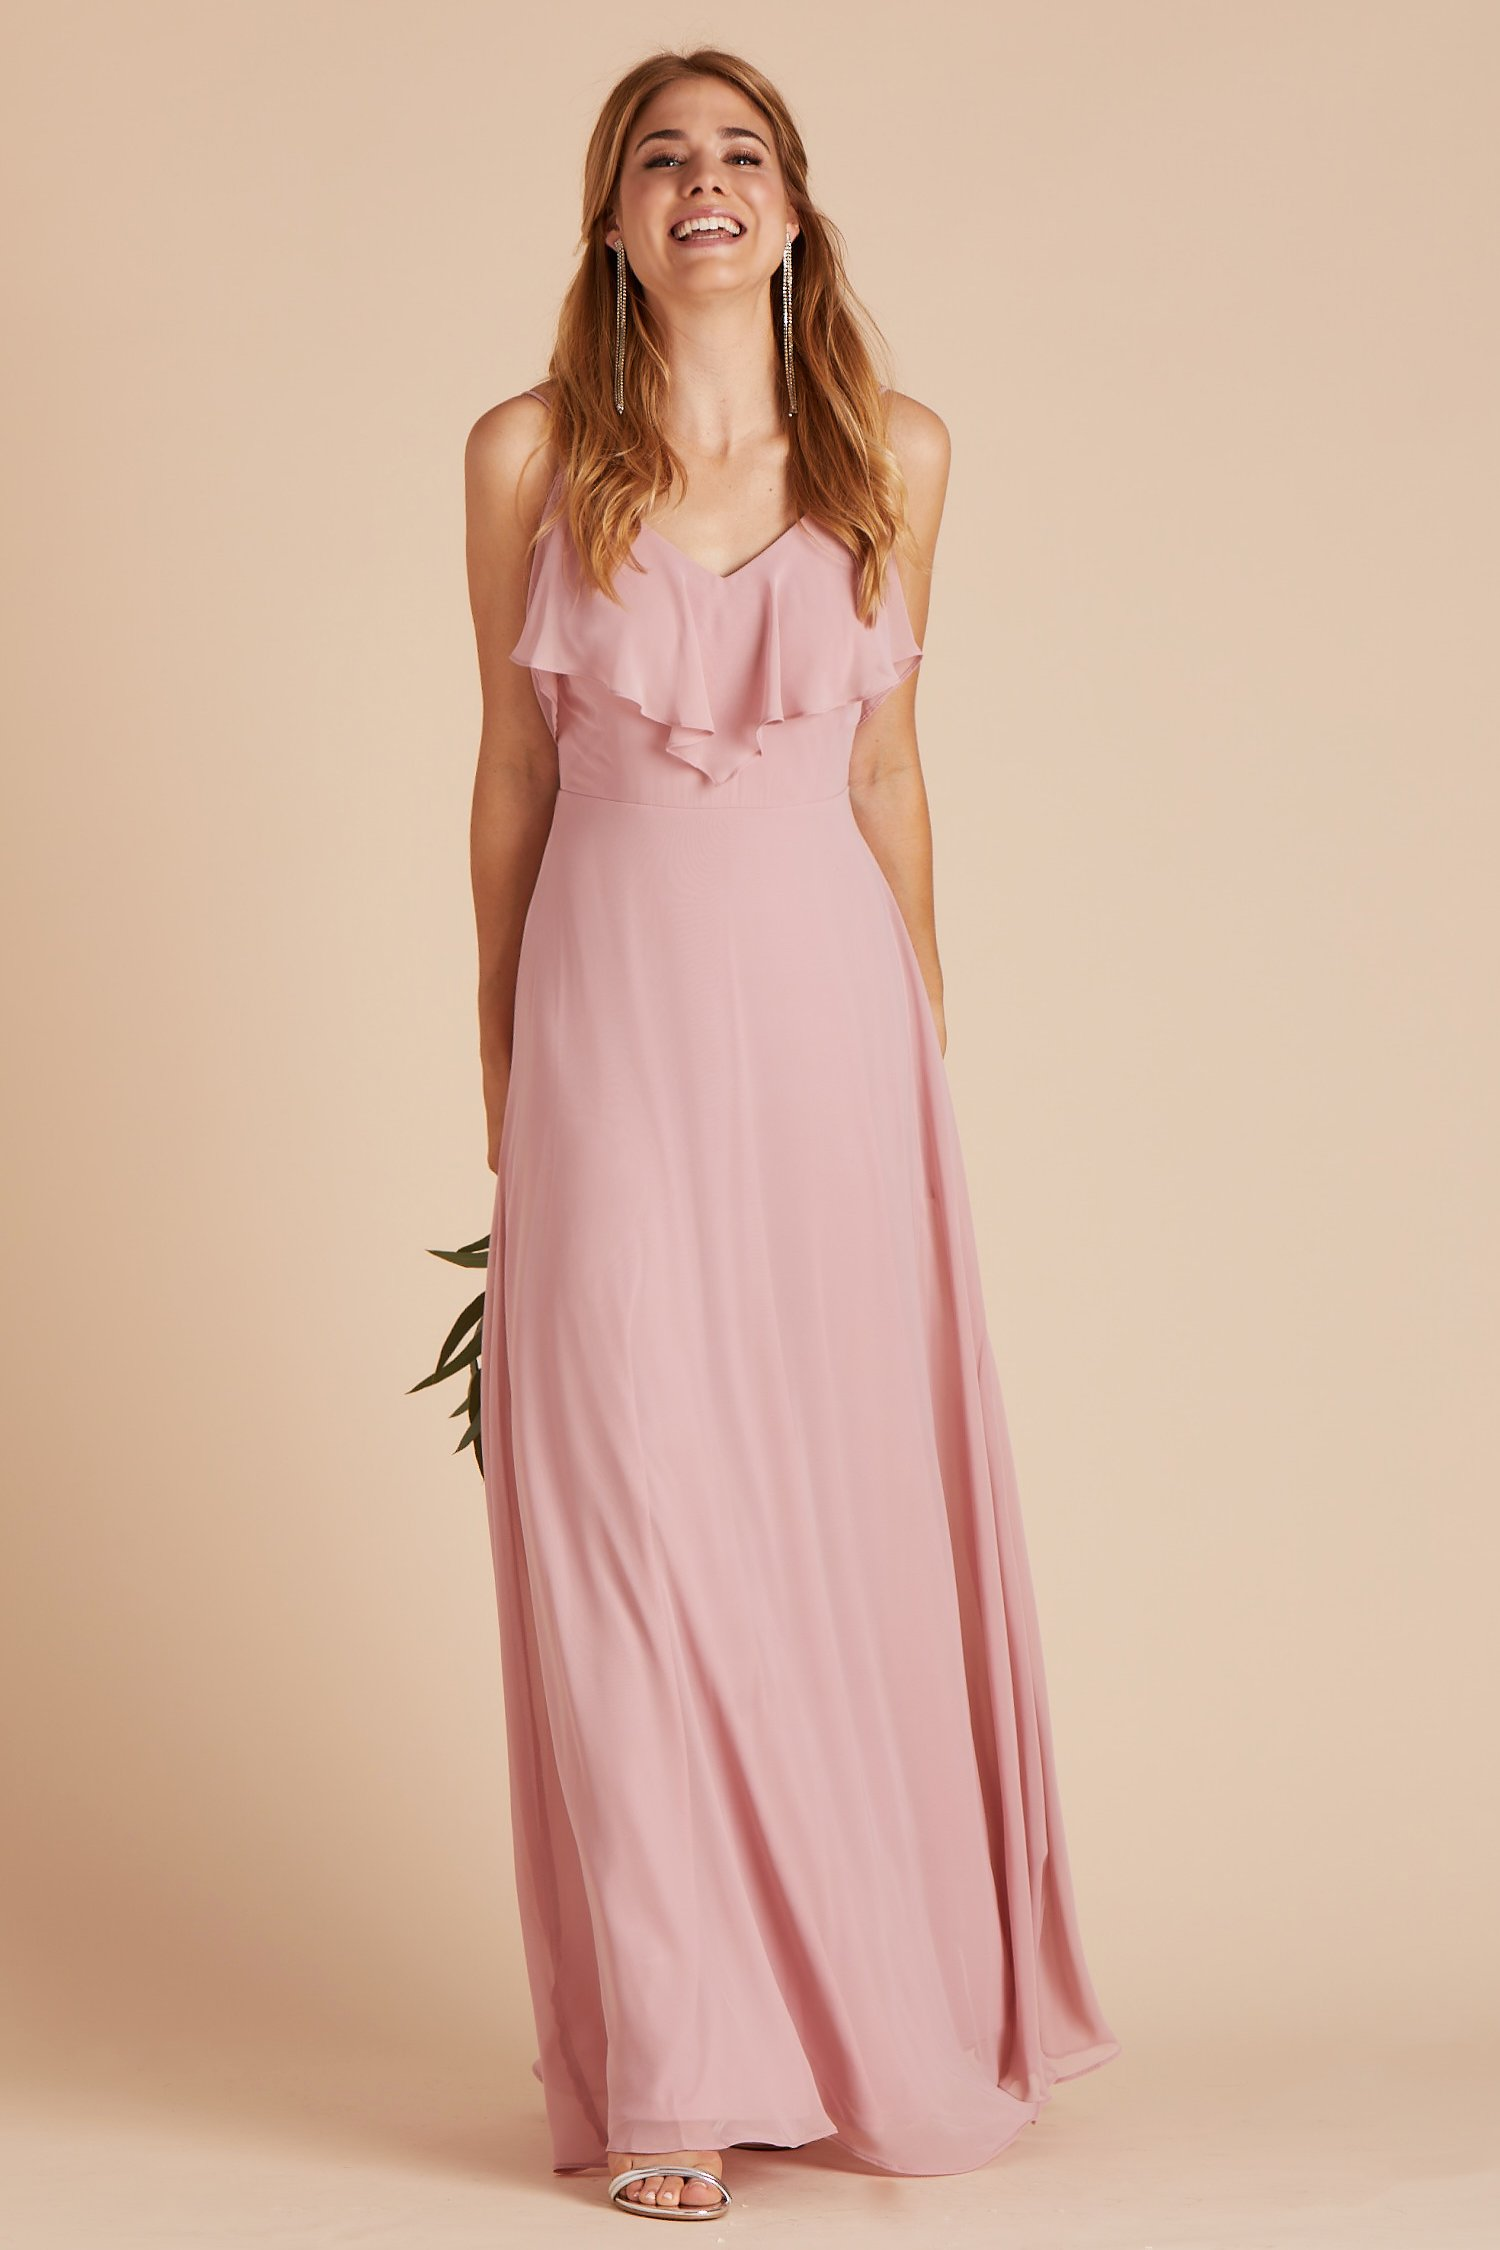 06996333a6f Jane Convertible Dress - Dusty Rose in 2019